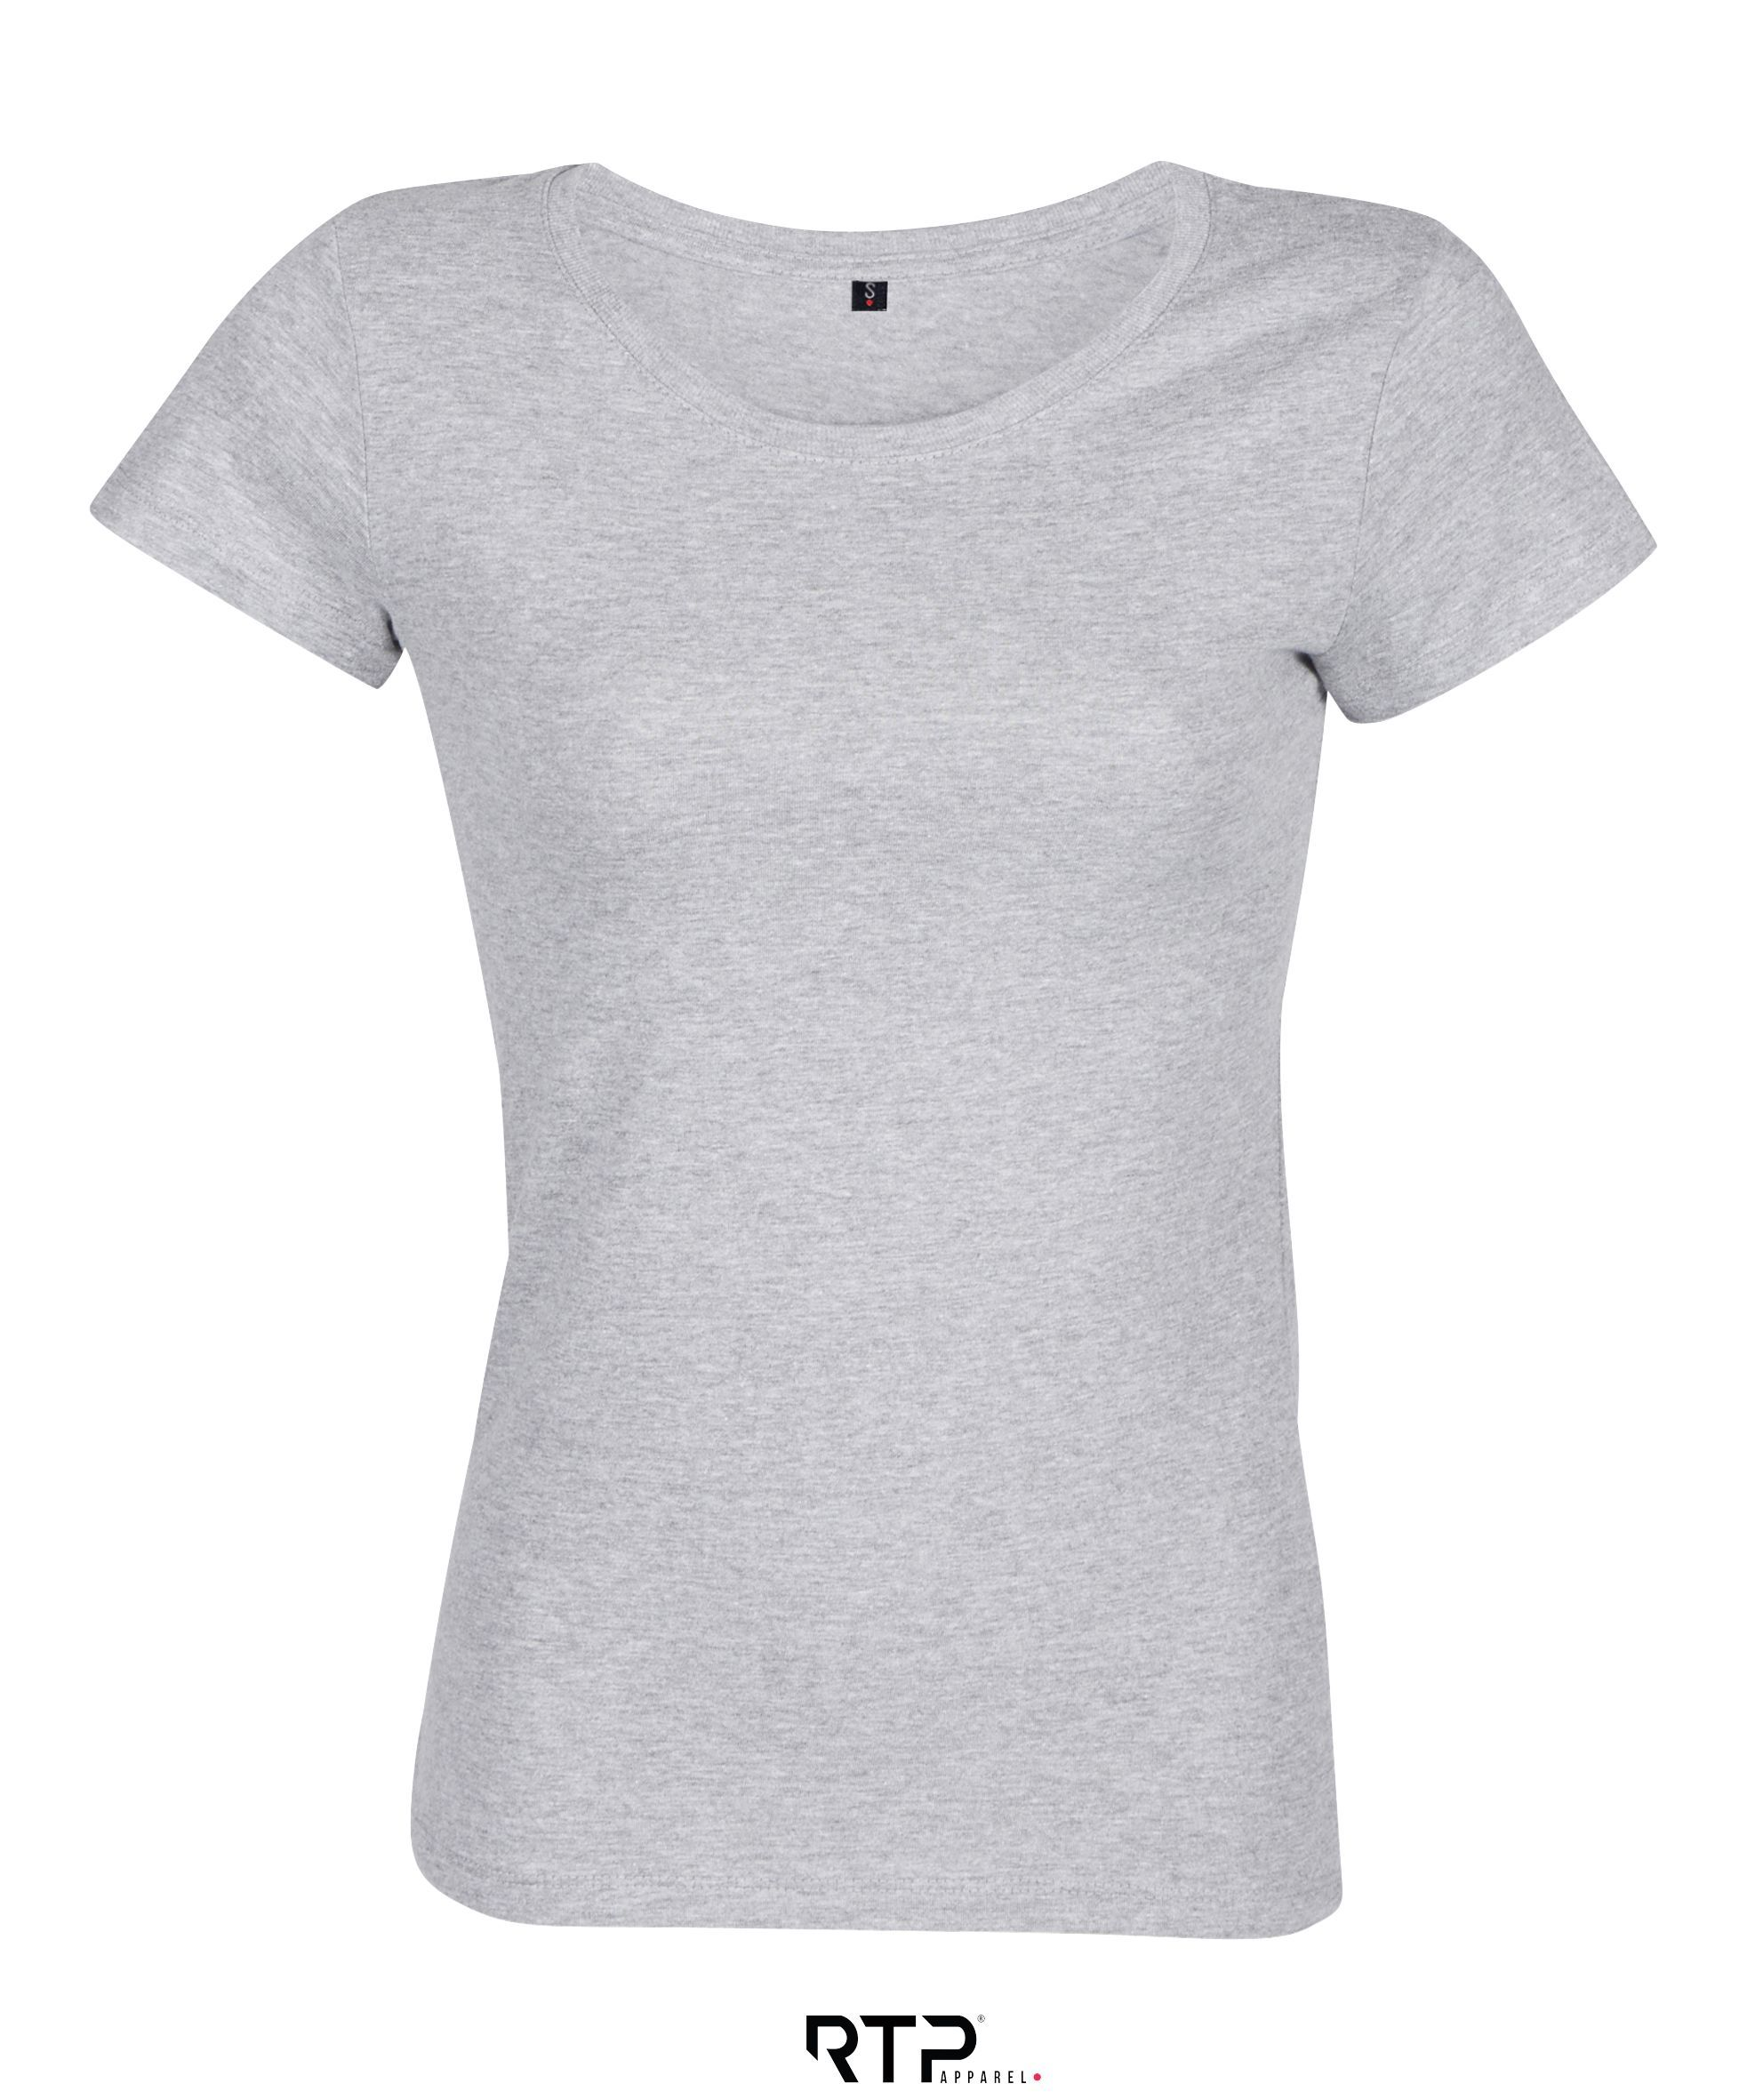 Tee-shirt femme coupe cousu manches courtes